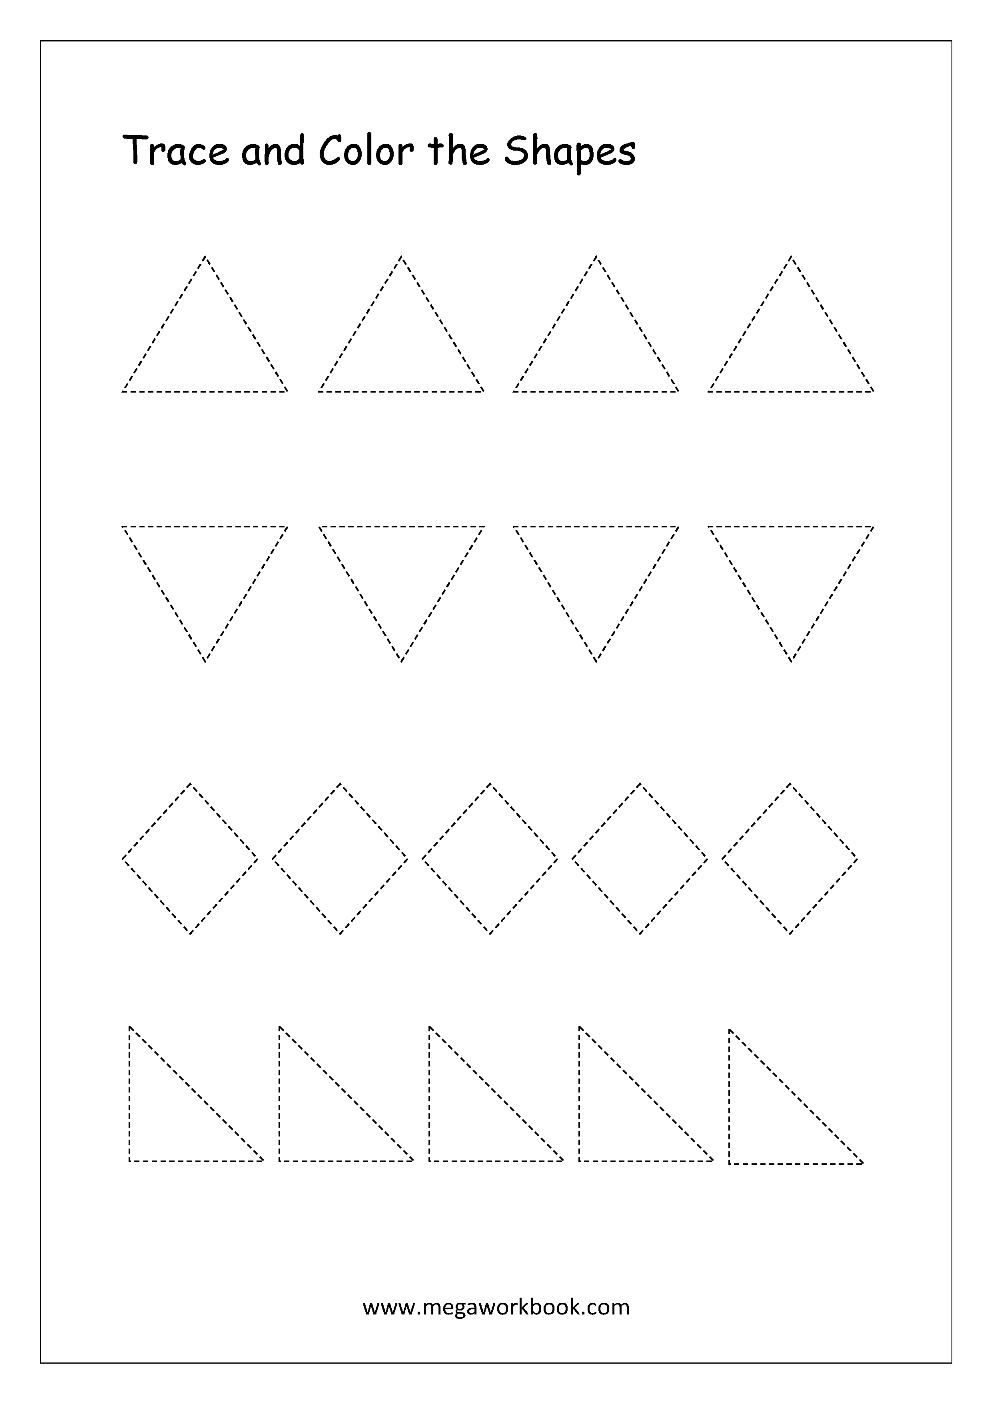 Free Printable Shapes Worksheets - Tracing Simple Shapes